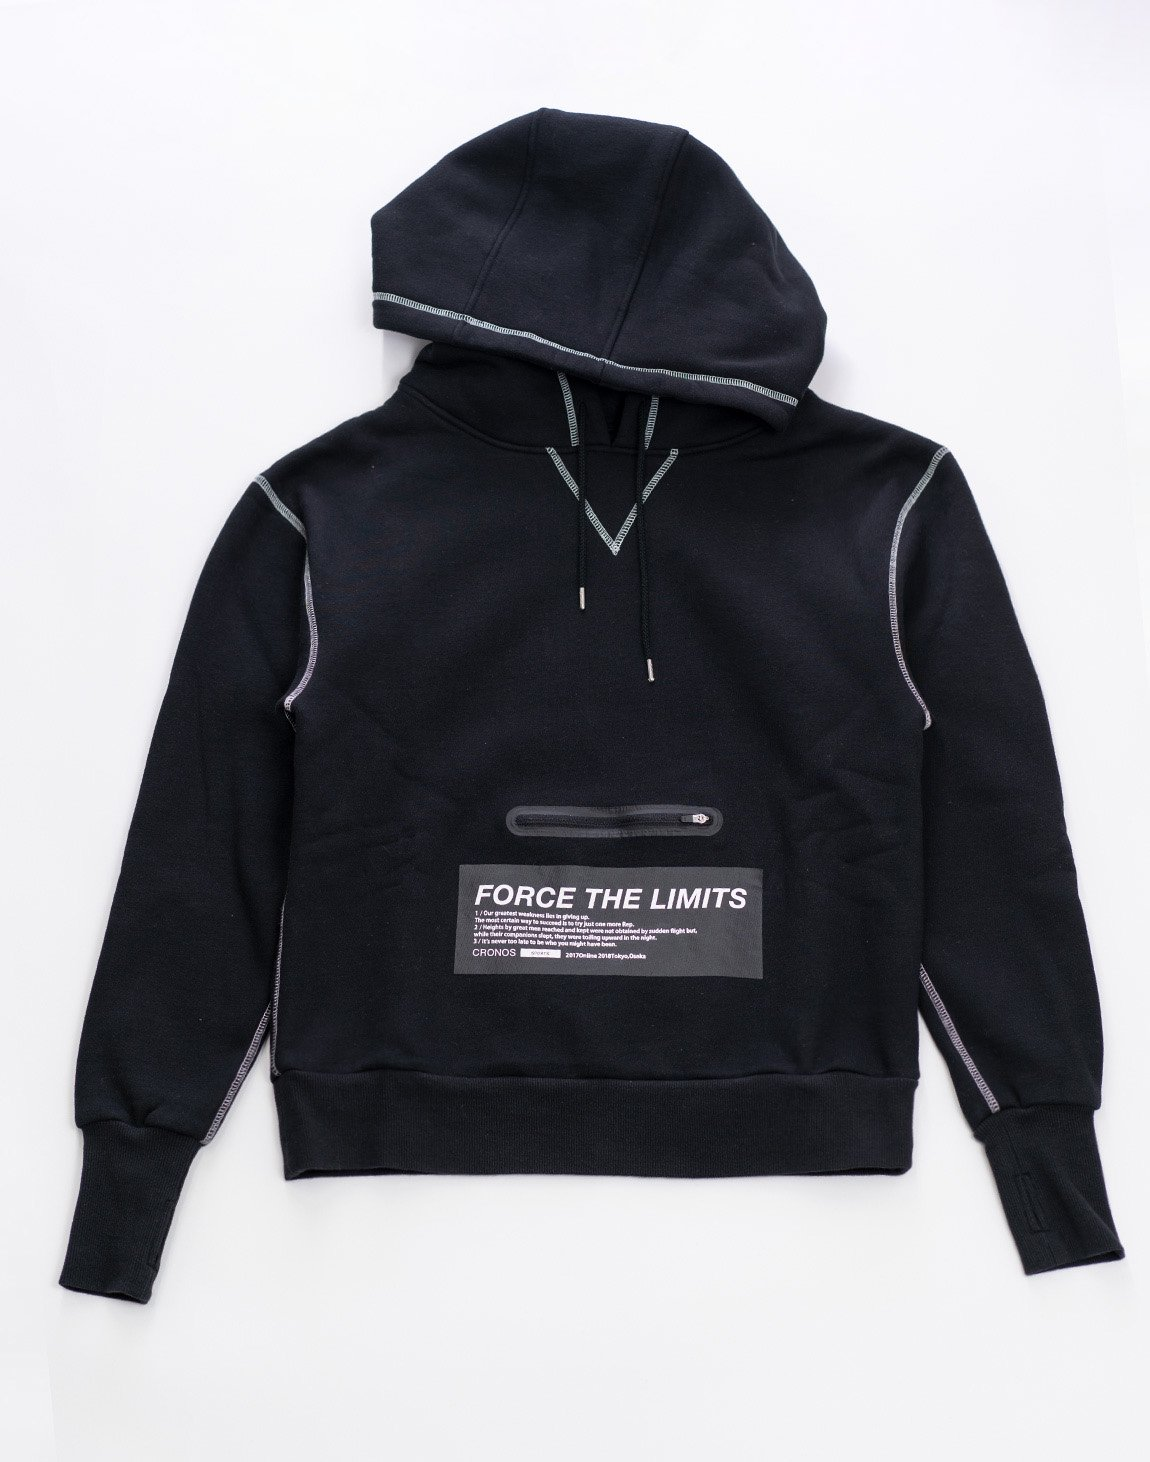 <img class='new_mark_img1' src='https://img.shop-pro.jp/img/new/icons1.gif' style='border:none;display:inline;margin:0px;padding:0px;width:auto;' />PK0015-SWEAT-PARKA-特色BLACK